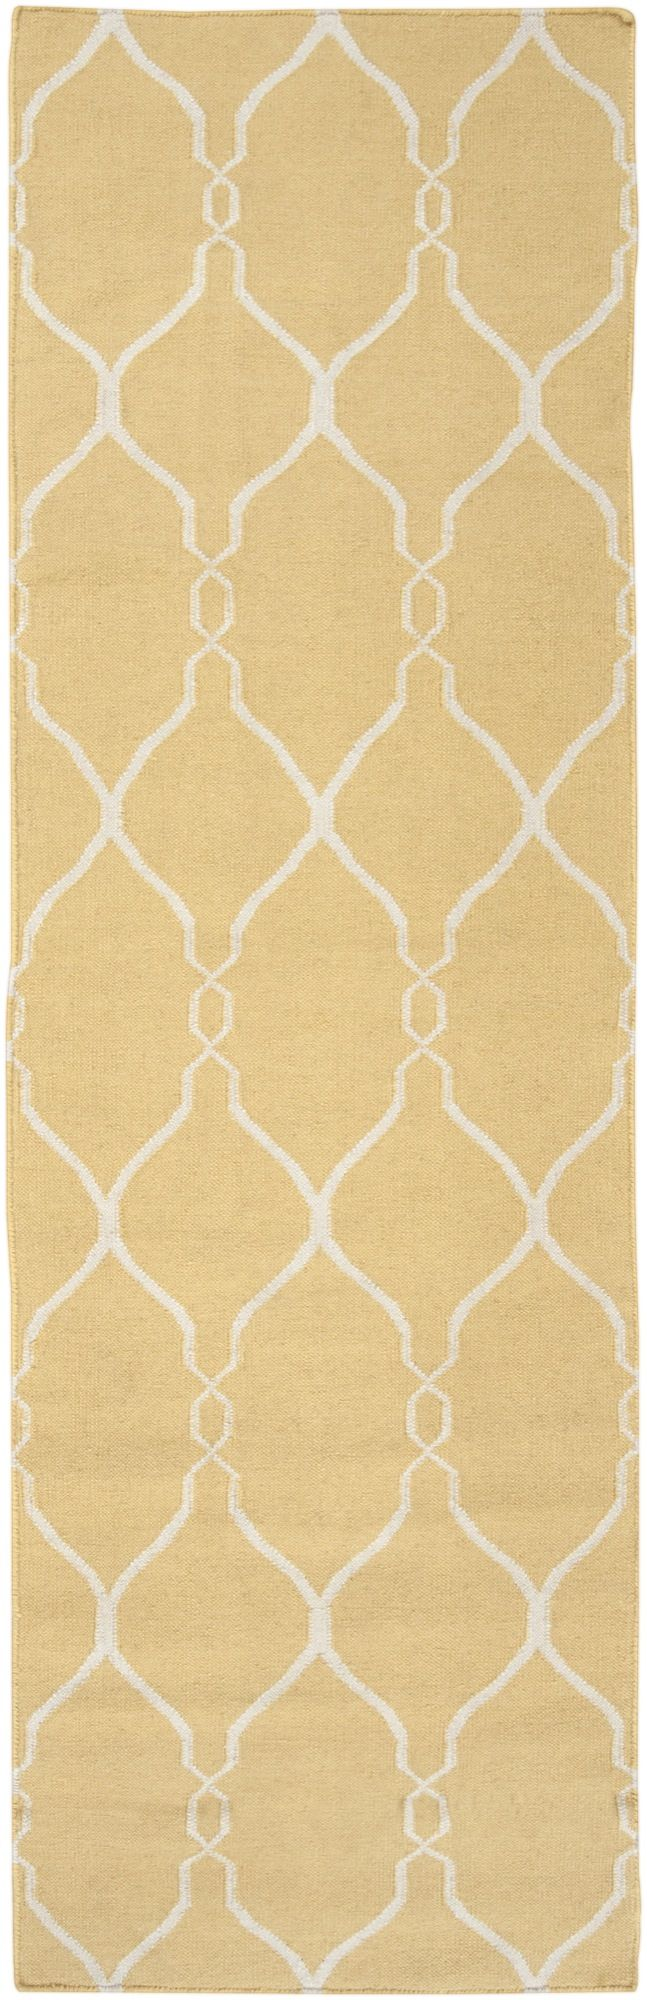 surya fallon transitional area rug collection